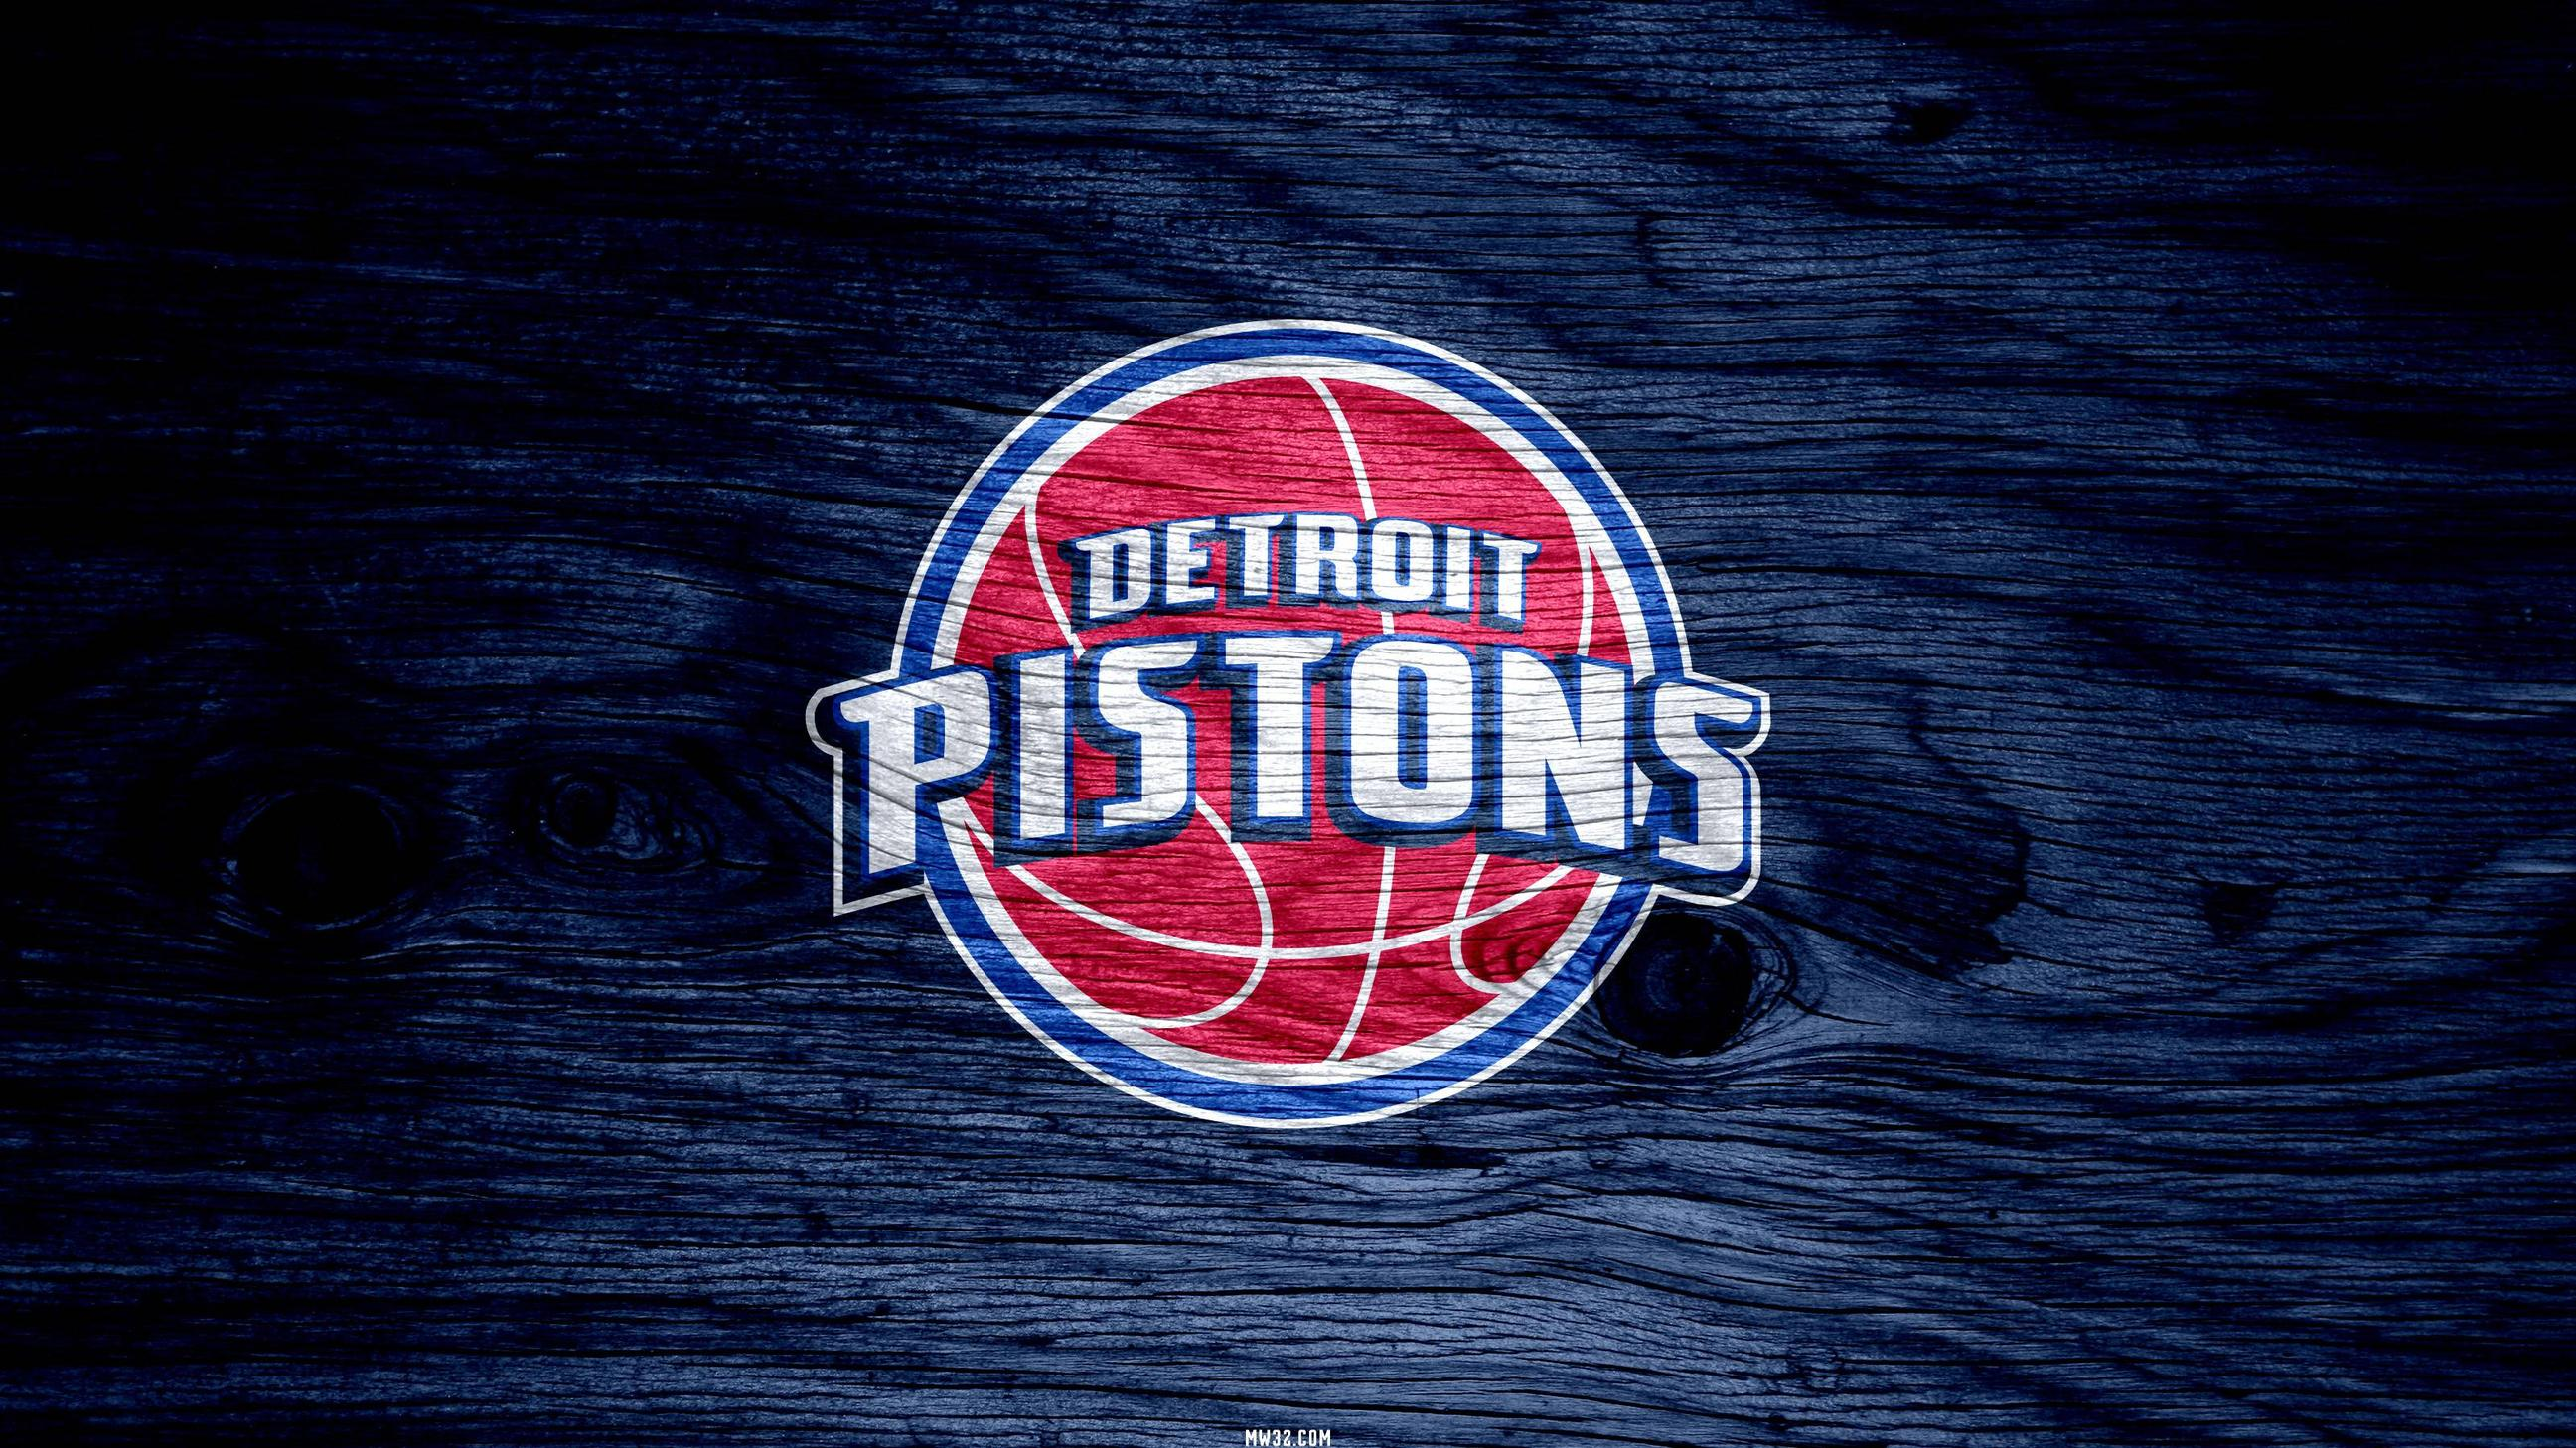 detroit pistons Computer Wallpapers Desktop Backgrounds 2593x1458 2593x1458